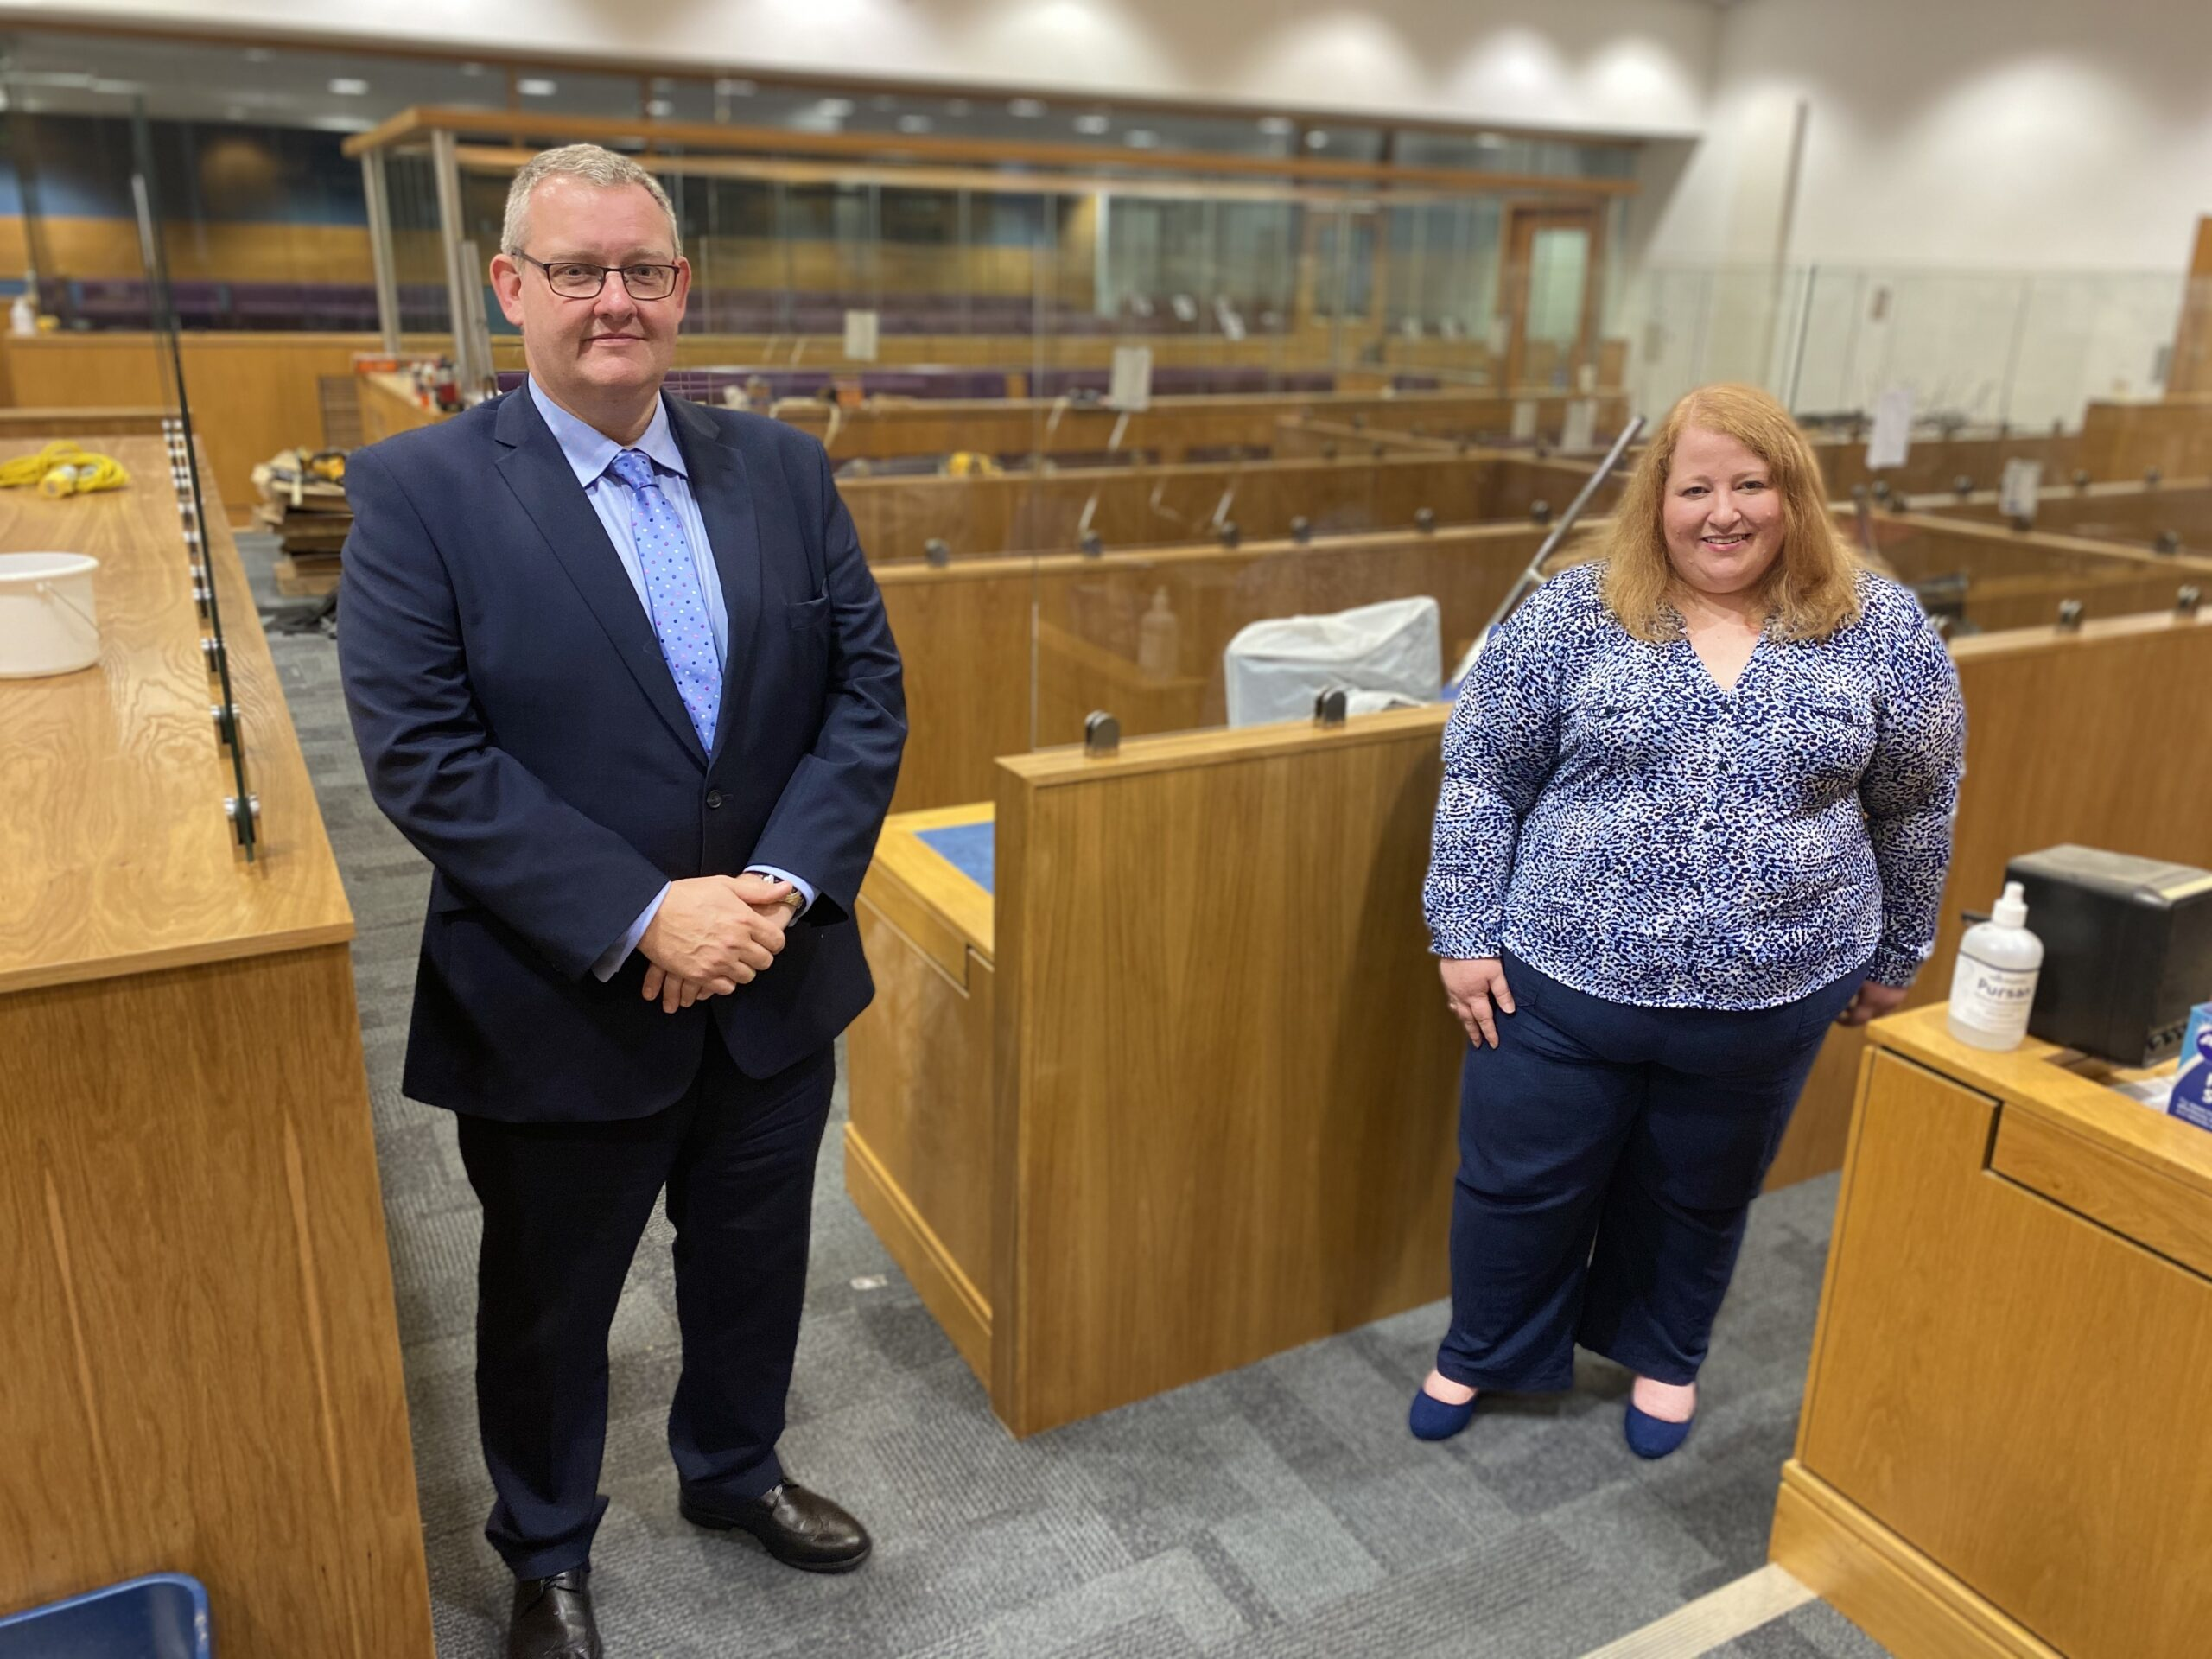 minister-naomi long-northern ireland courts jury - Newry newspaper